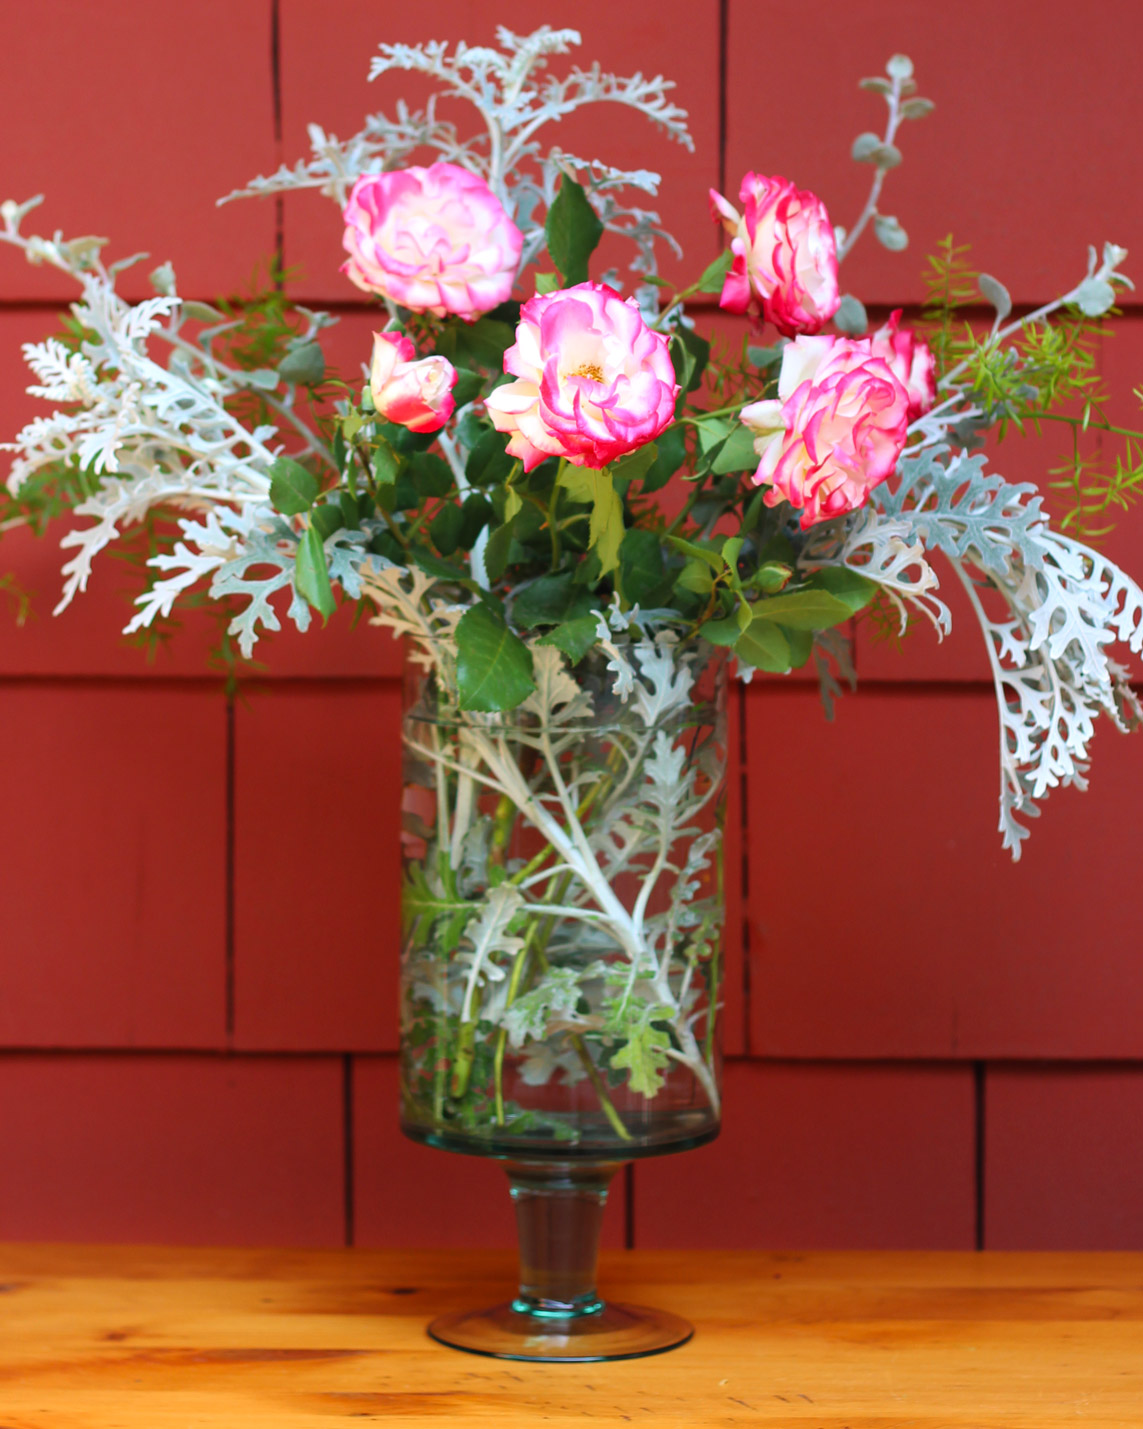 Add the stem of Floribundas or spray of roses. You should see roses in front and back.